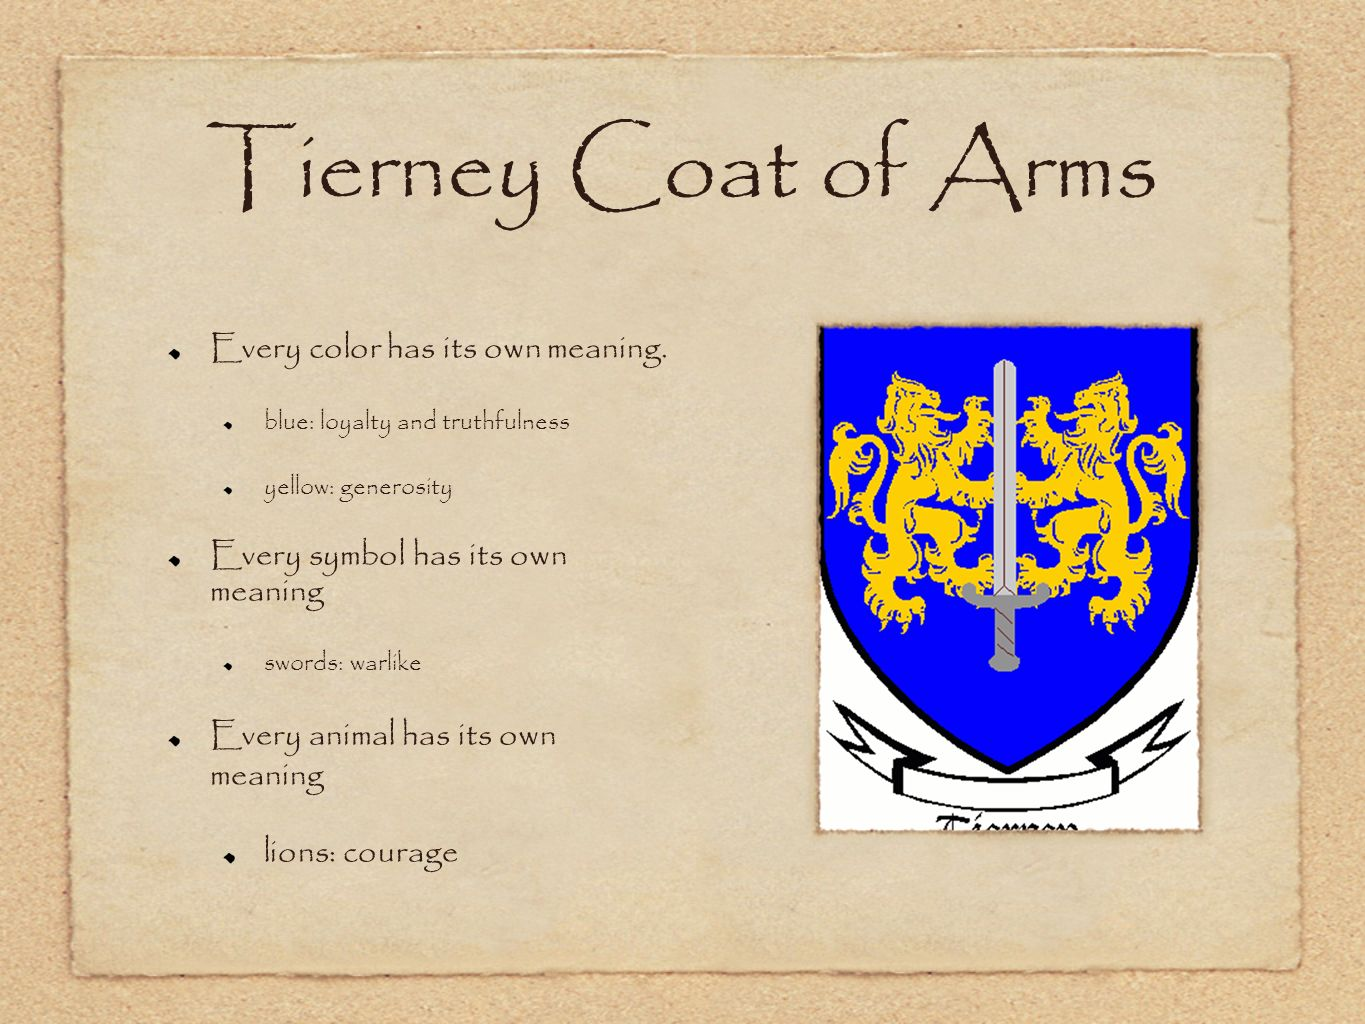 Coats of arms world history cp ms cook todays objective tswbat tierney coat of arms every color has its own meaning biocorpaavc Images